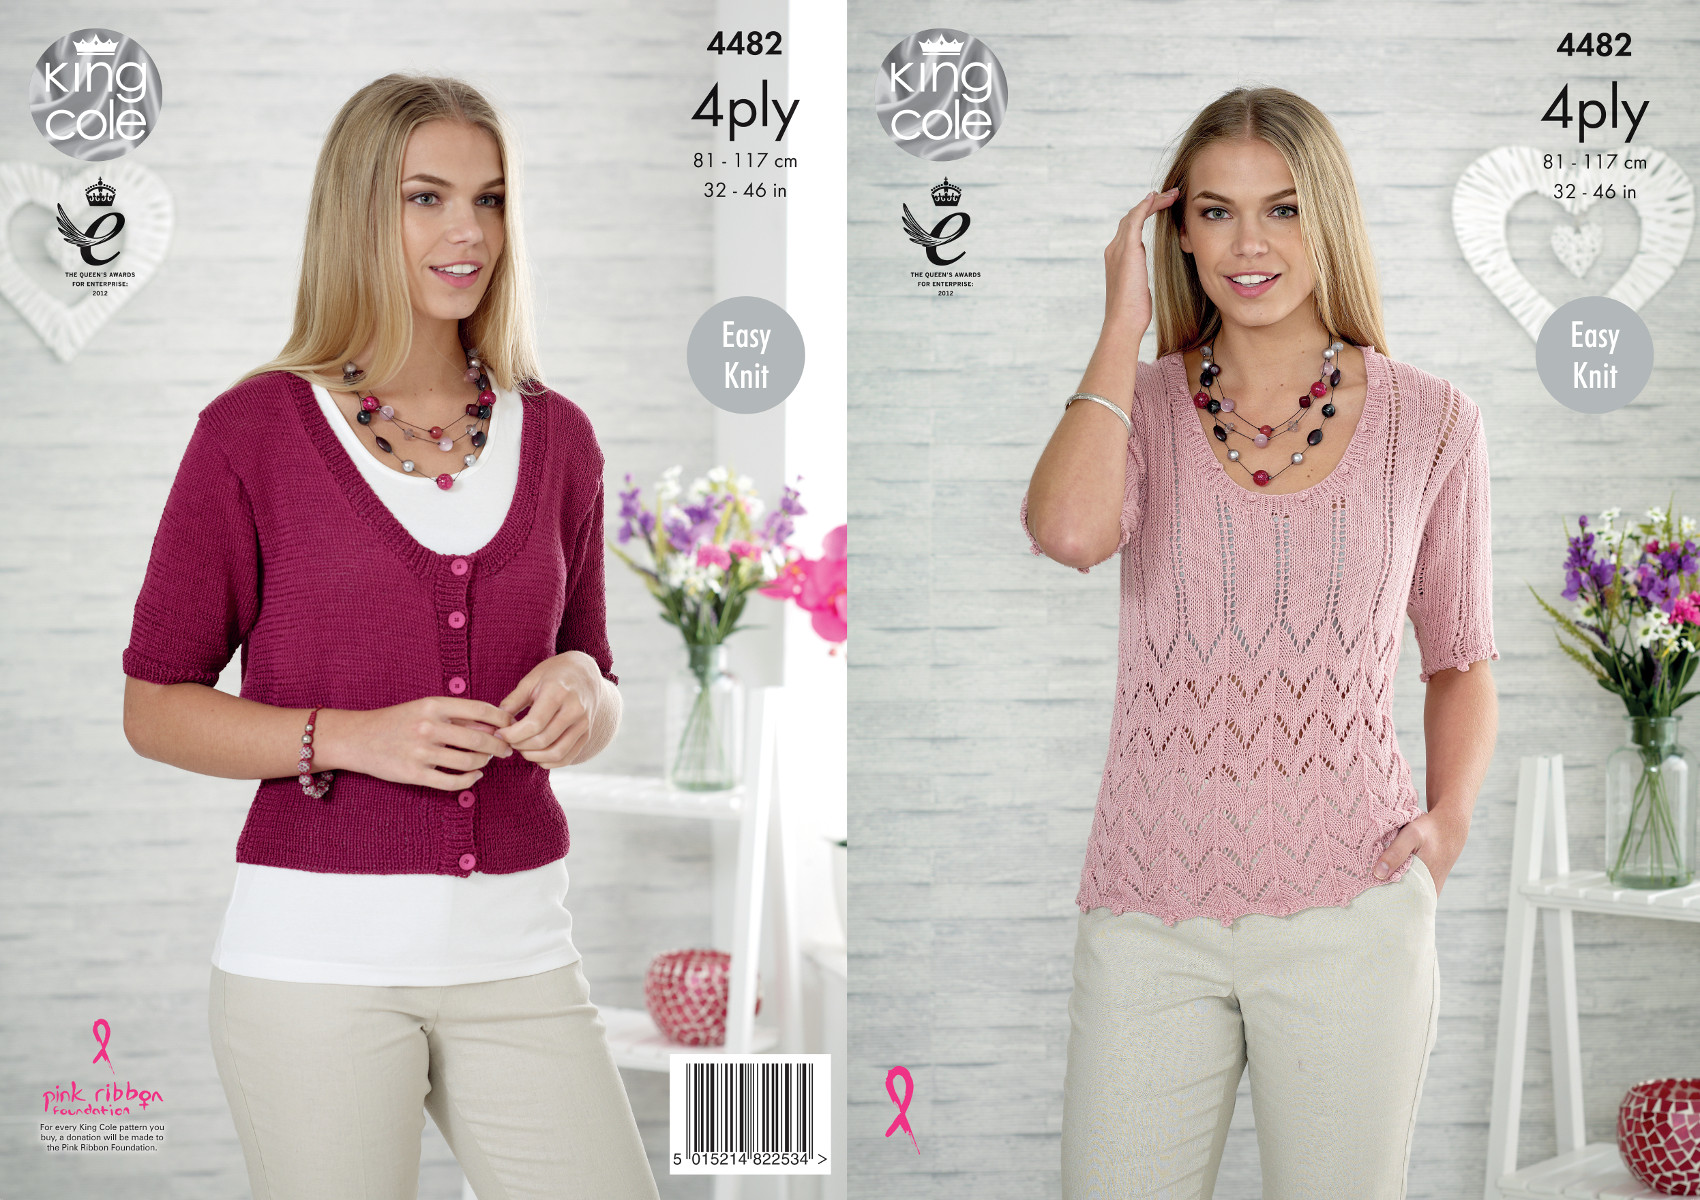 Womens lace top cardigan knitting pattern king cole ladies easy womens lace top cardigan knitting pattern king cole ladies easy knit 4ply 4482 bankloansurffo Image collections